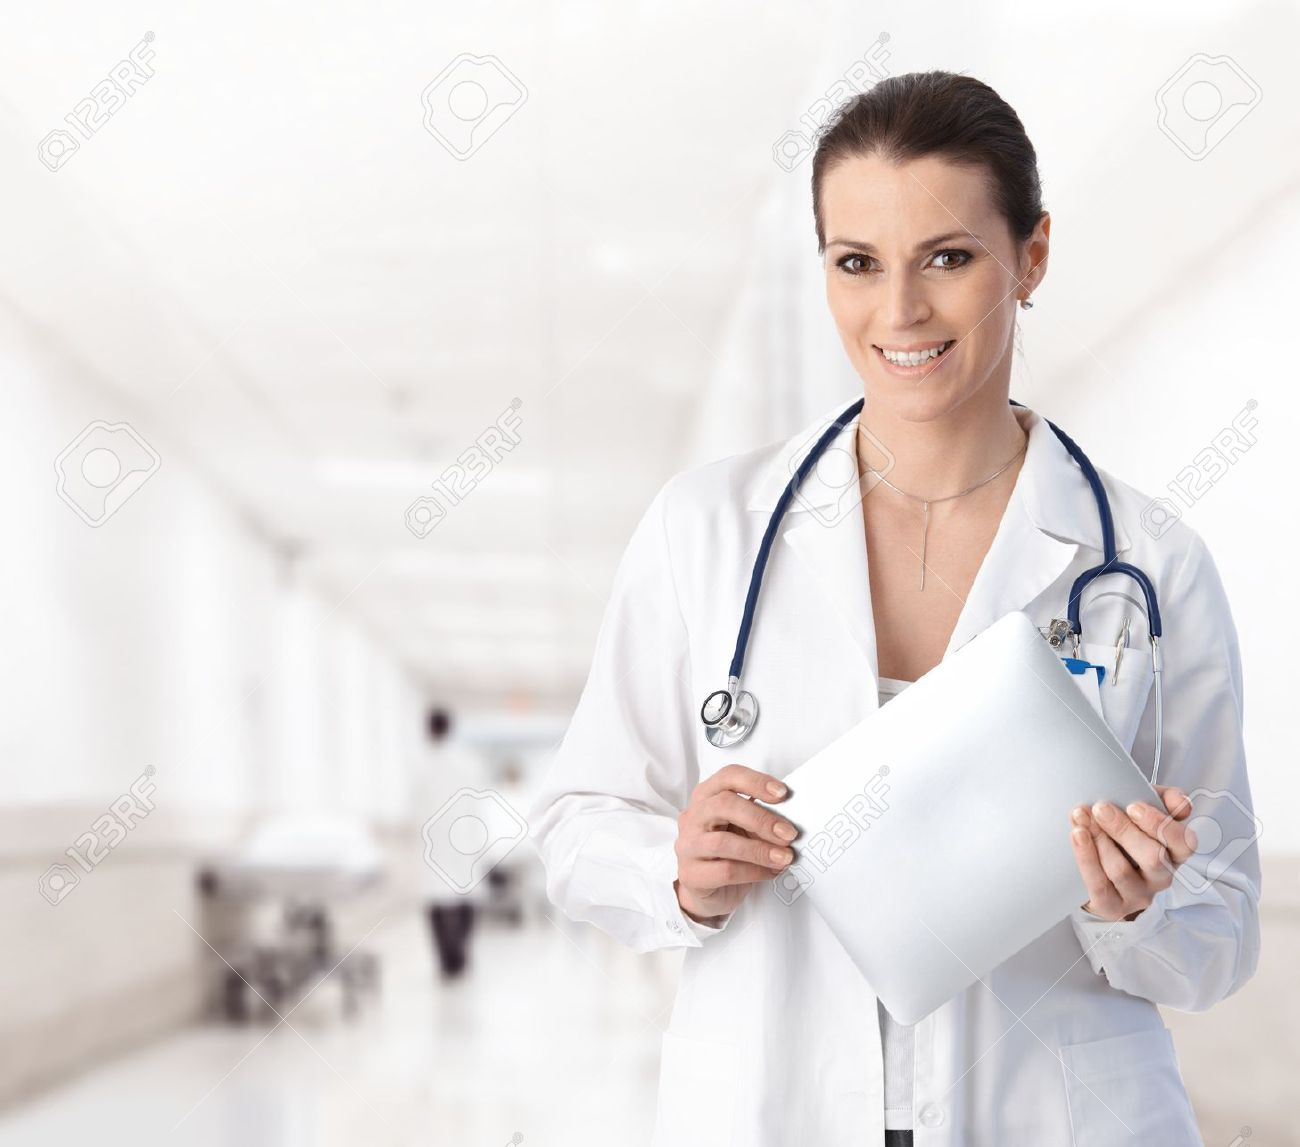 Portrait of woman doctor at hospital corridor, holding tablet computer, looking at camera, smiling.� Stock Photo - 9611561